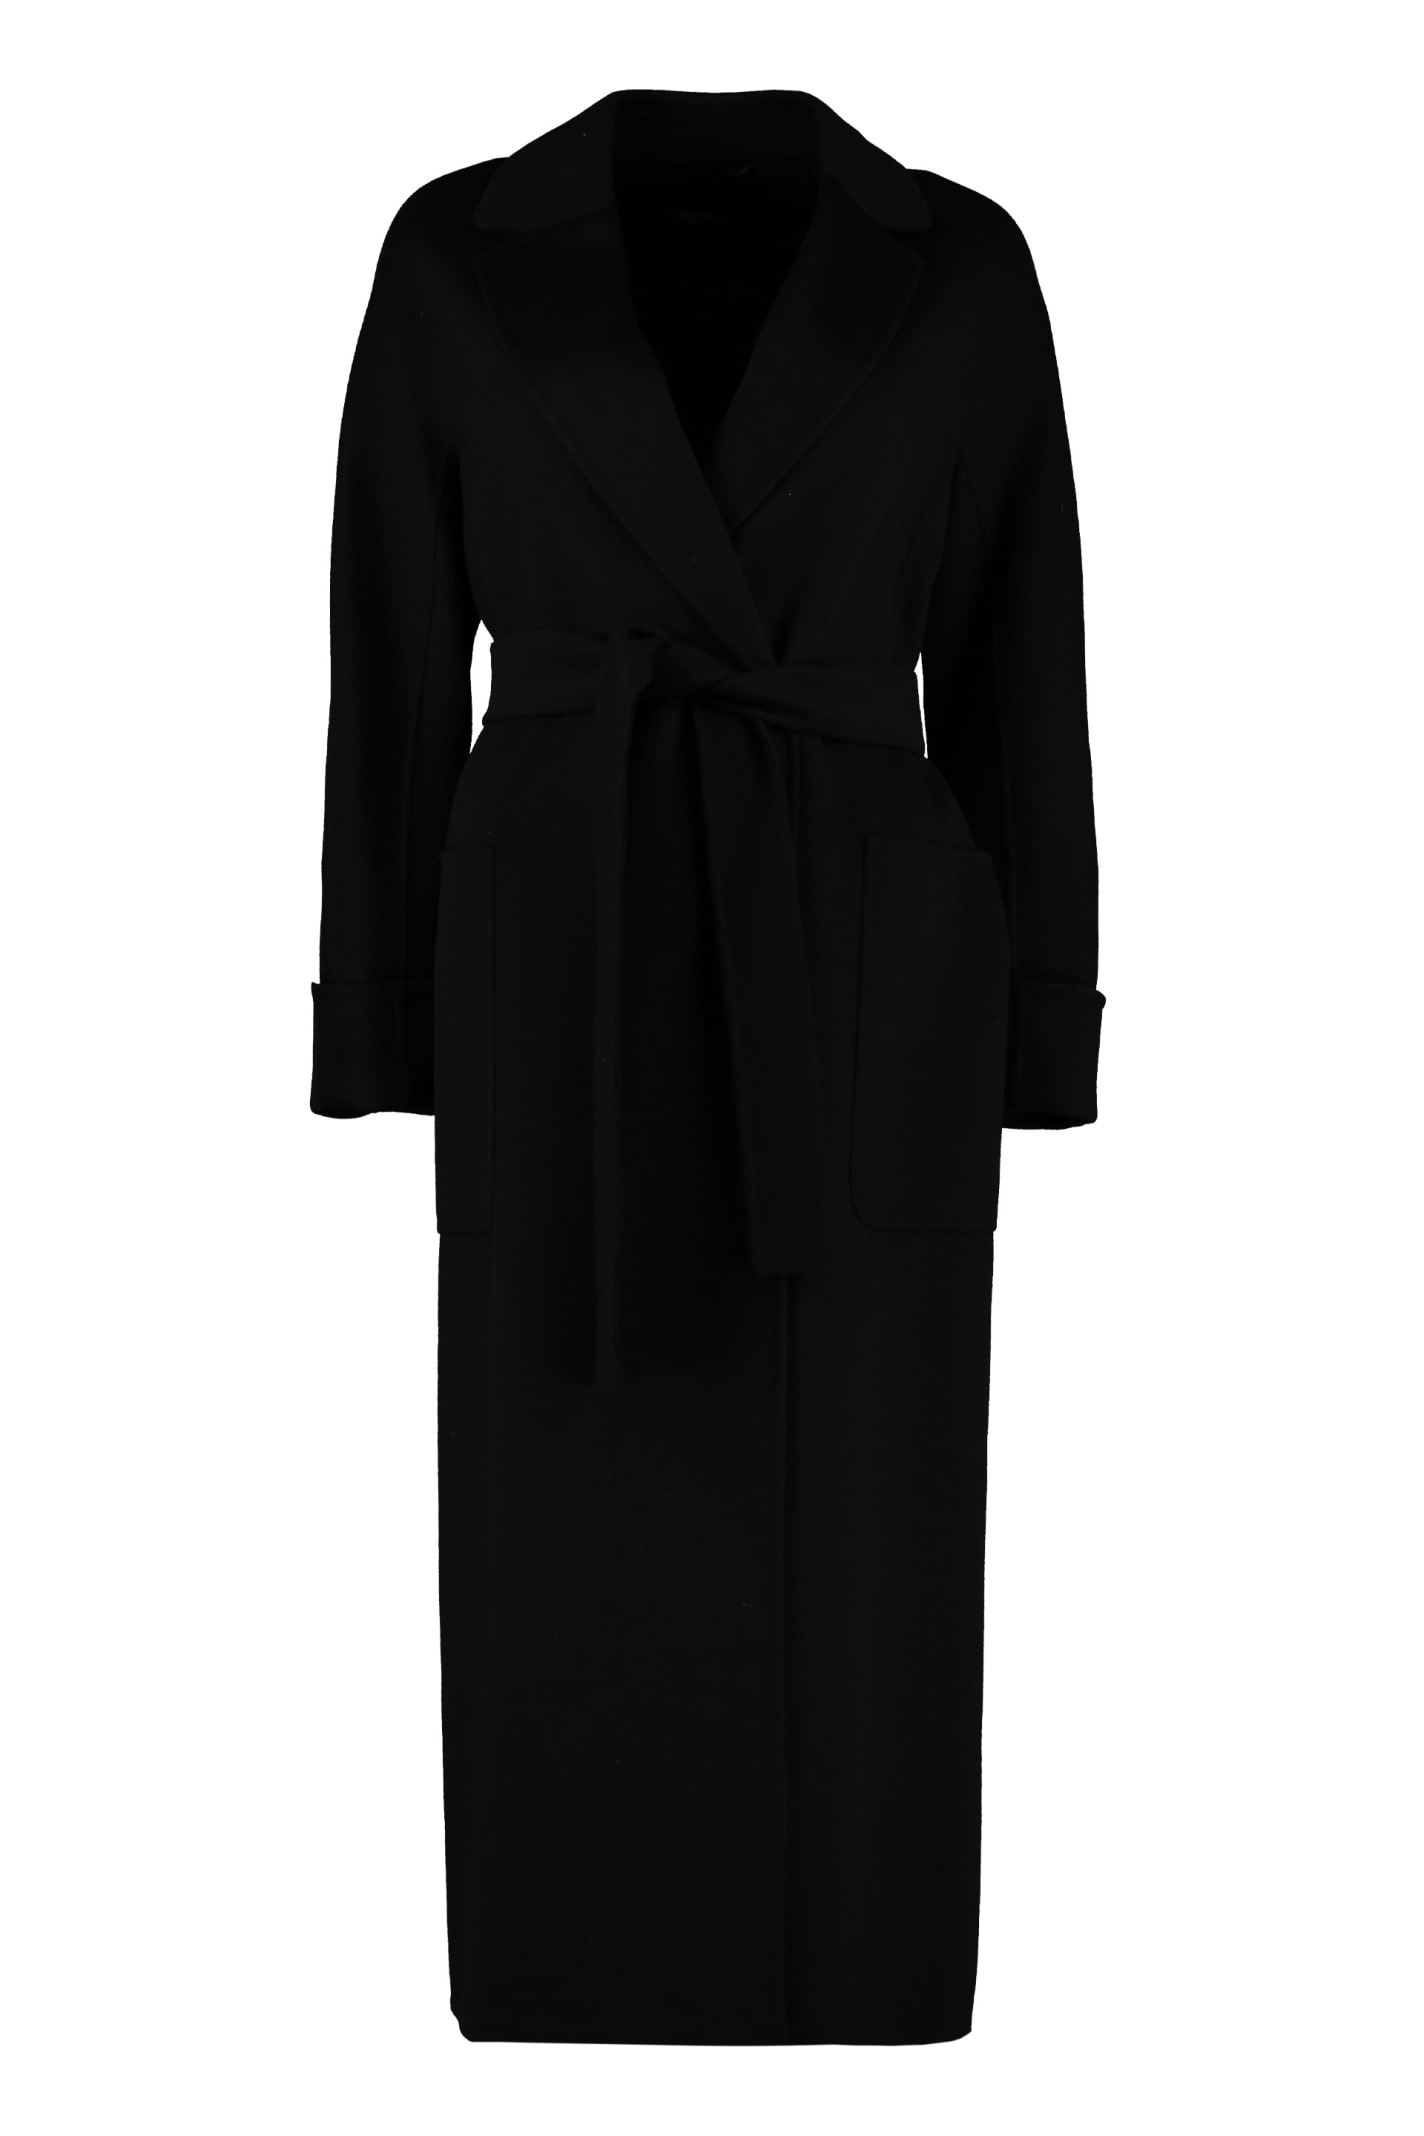 S Max Mara Here is The Cube Algeri Virgin Wool Long Coat